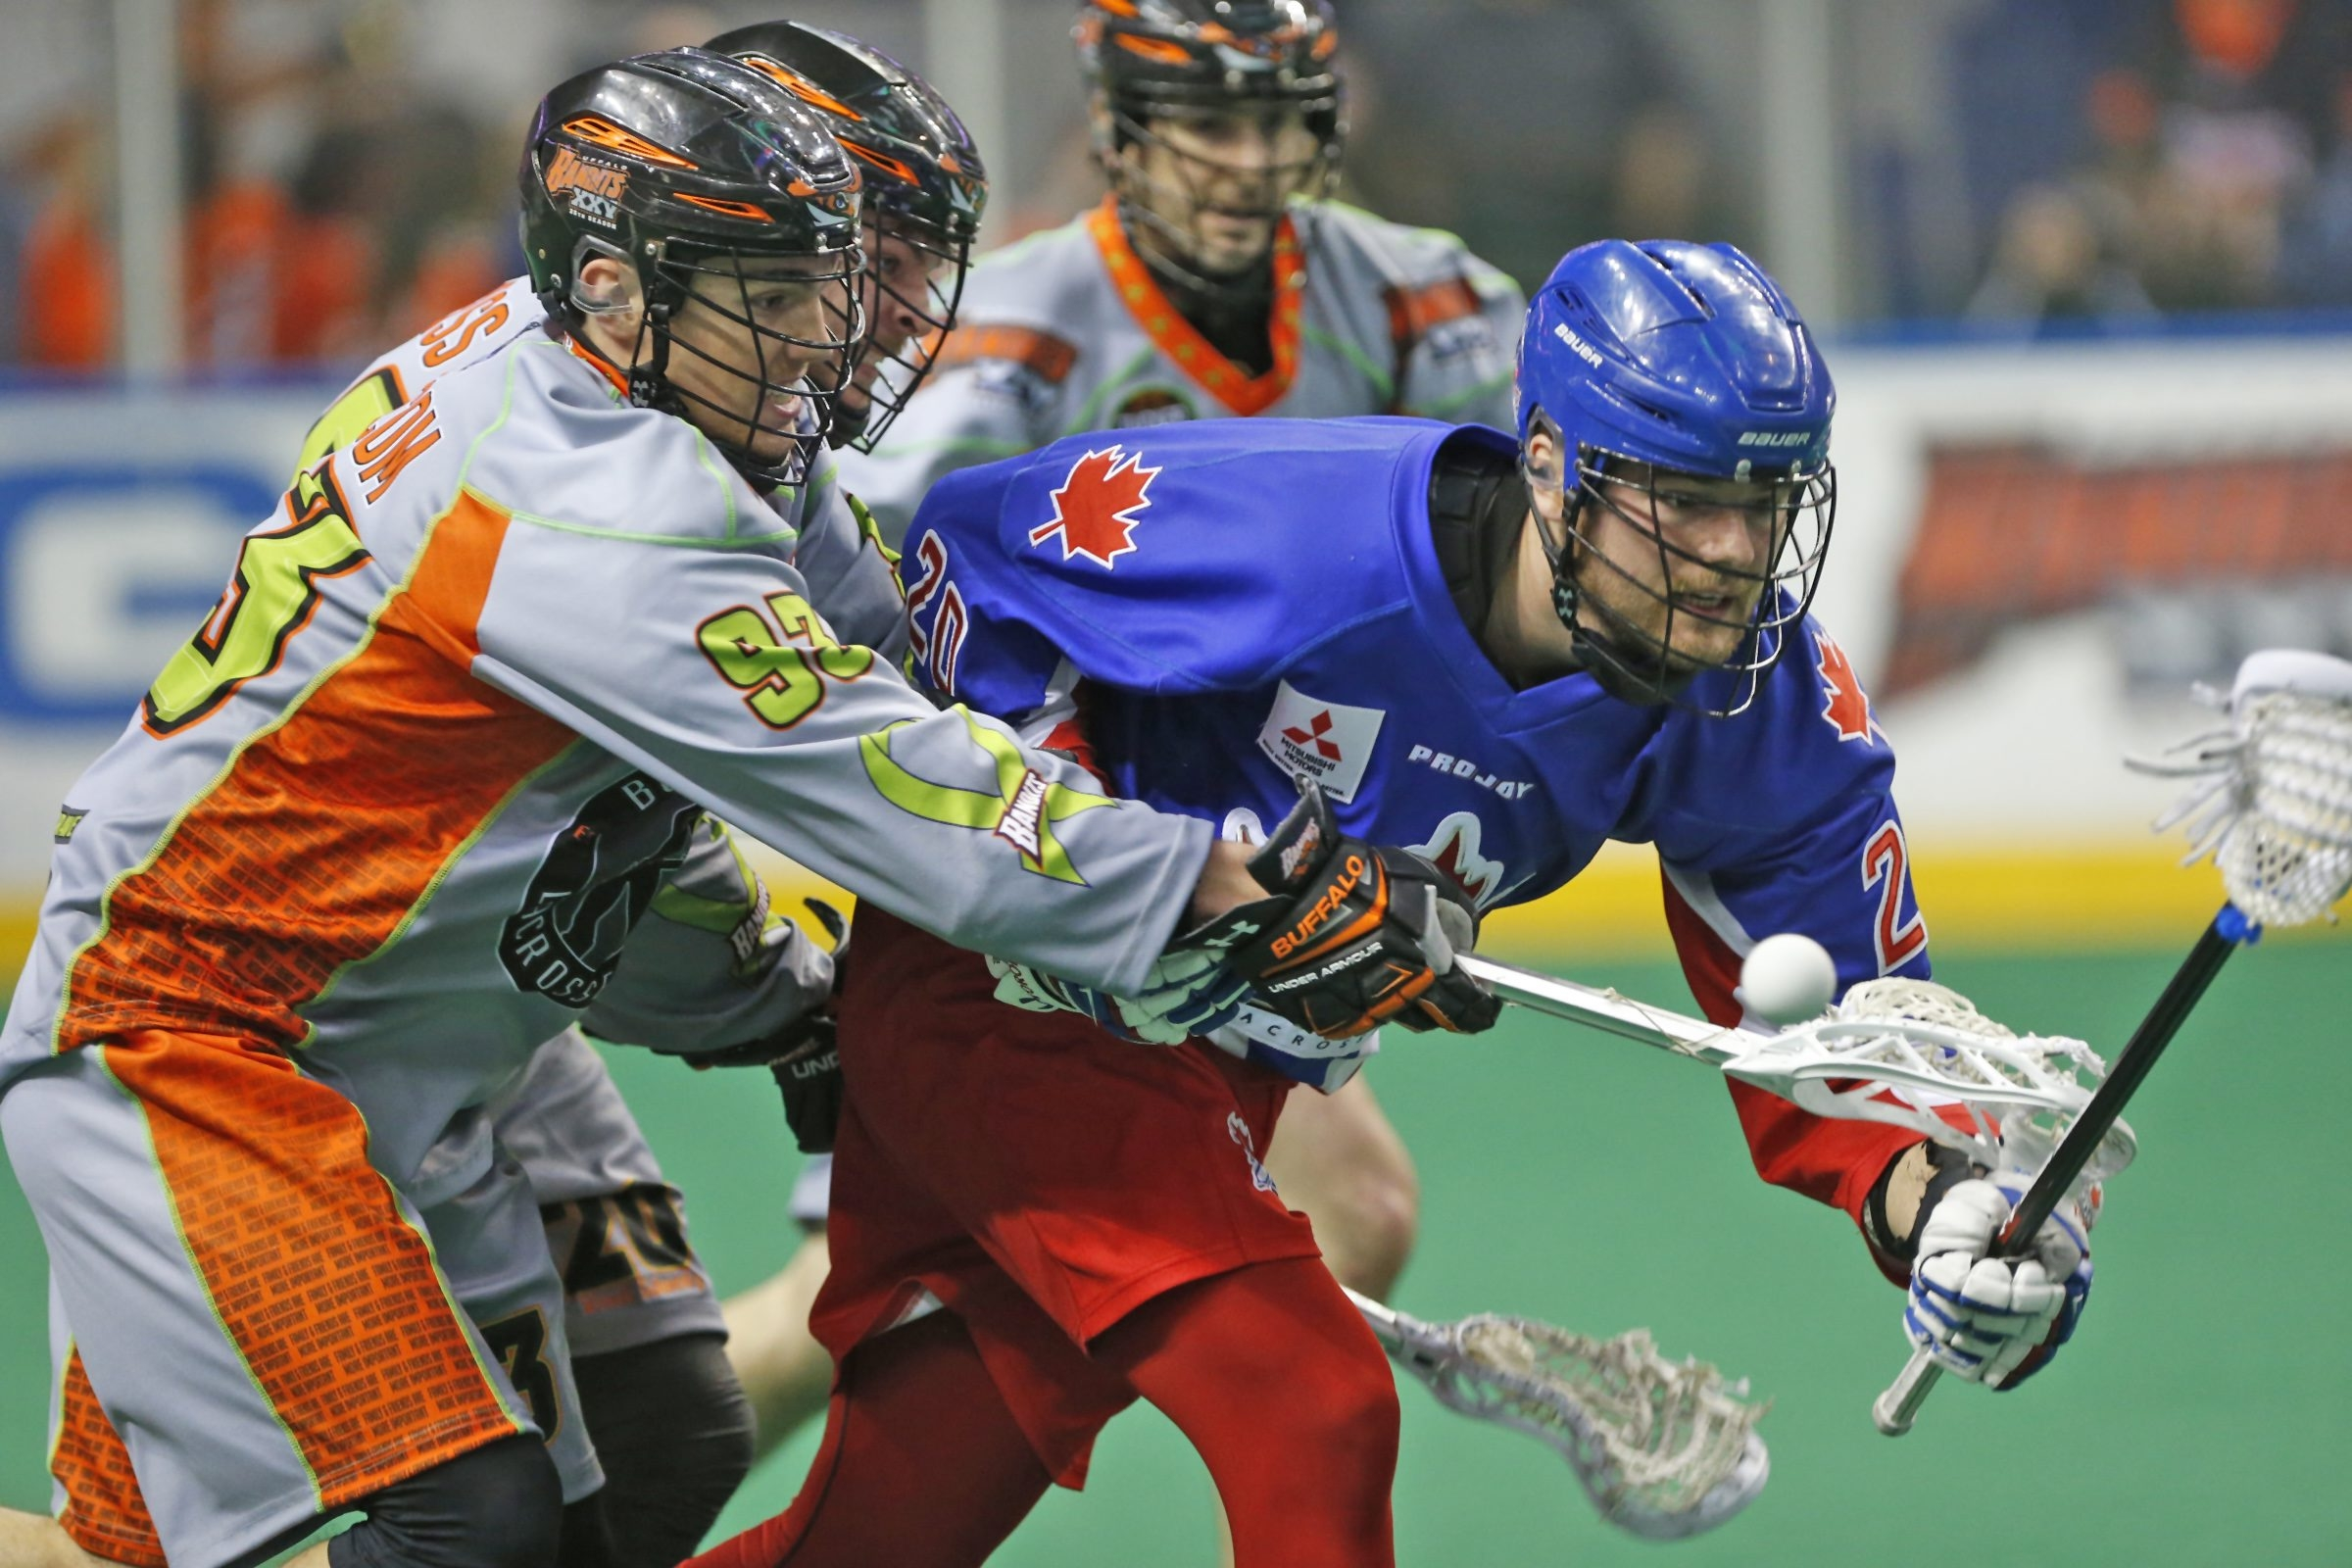 The Bandits' Anthony Malcom strips Toronto's Bradley Kri of possession during Saturday's win at First Niagara Center.